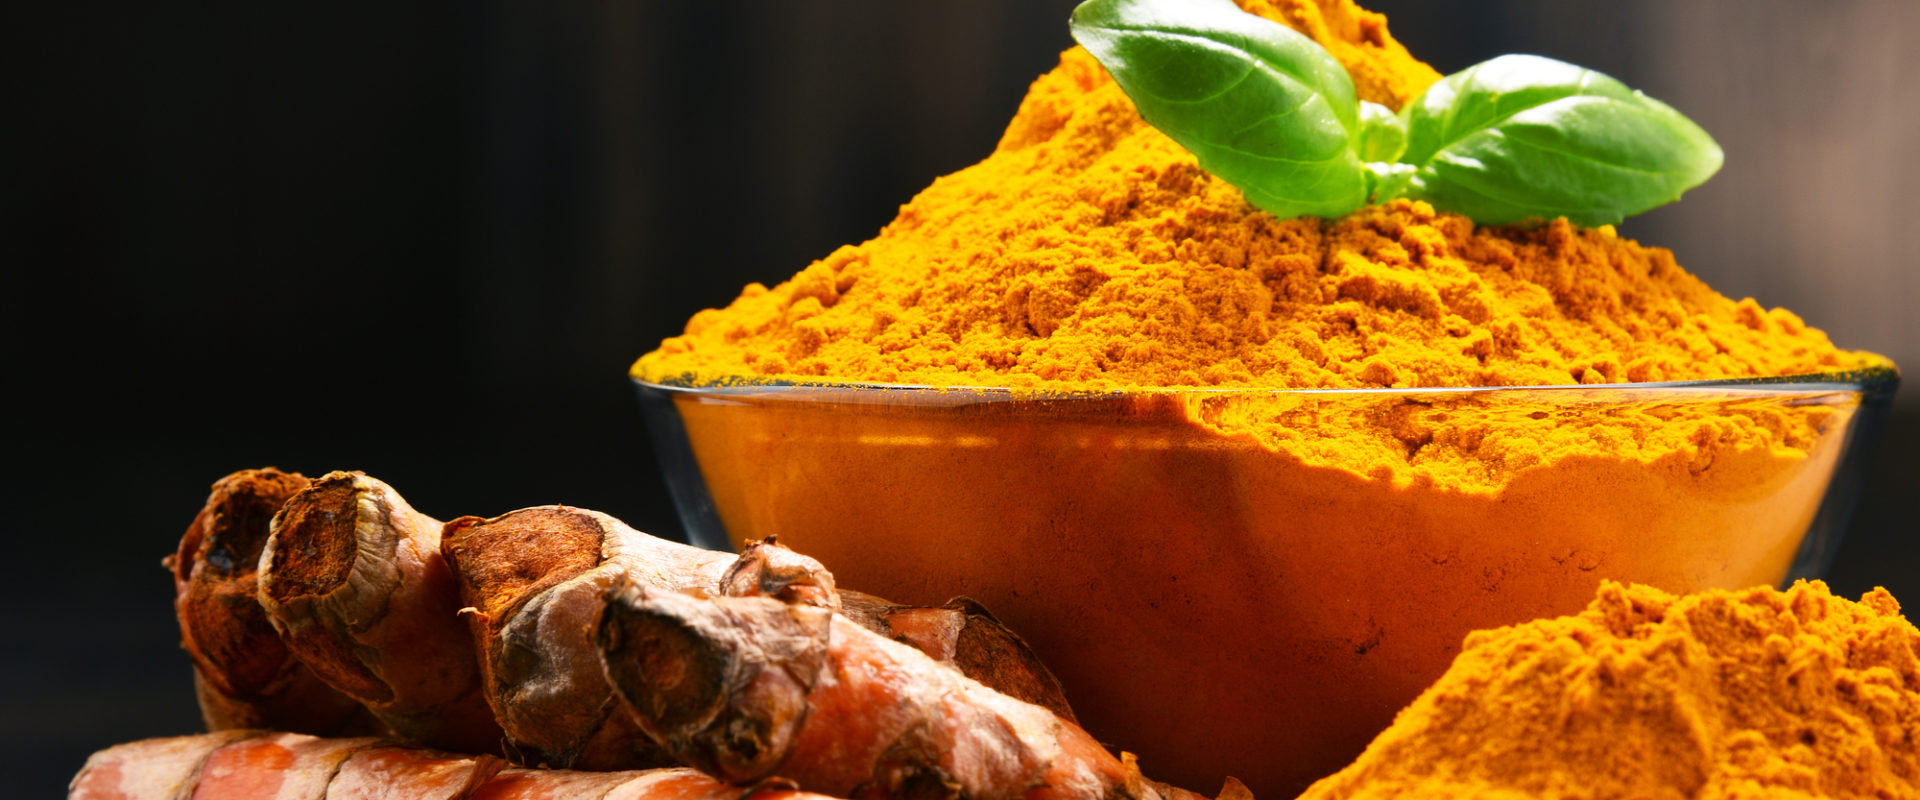 Das Superfood: Curcuma